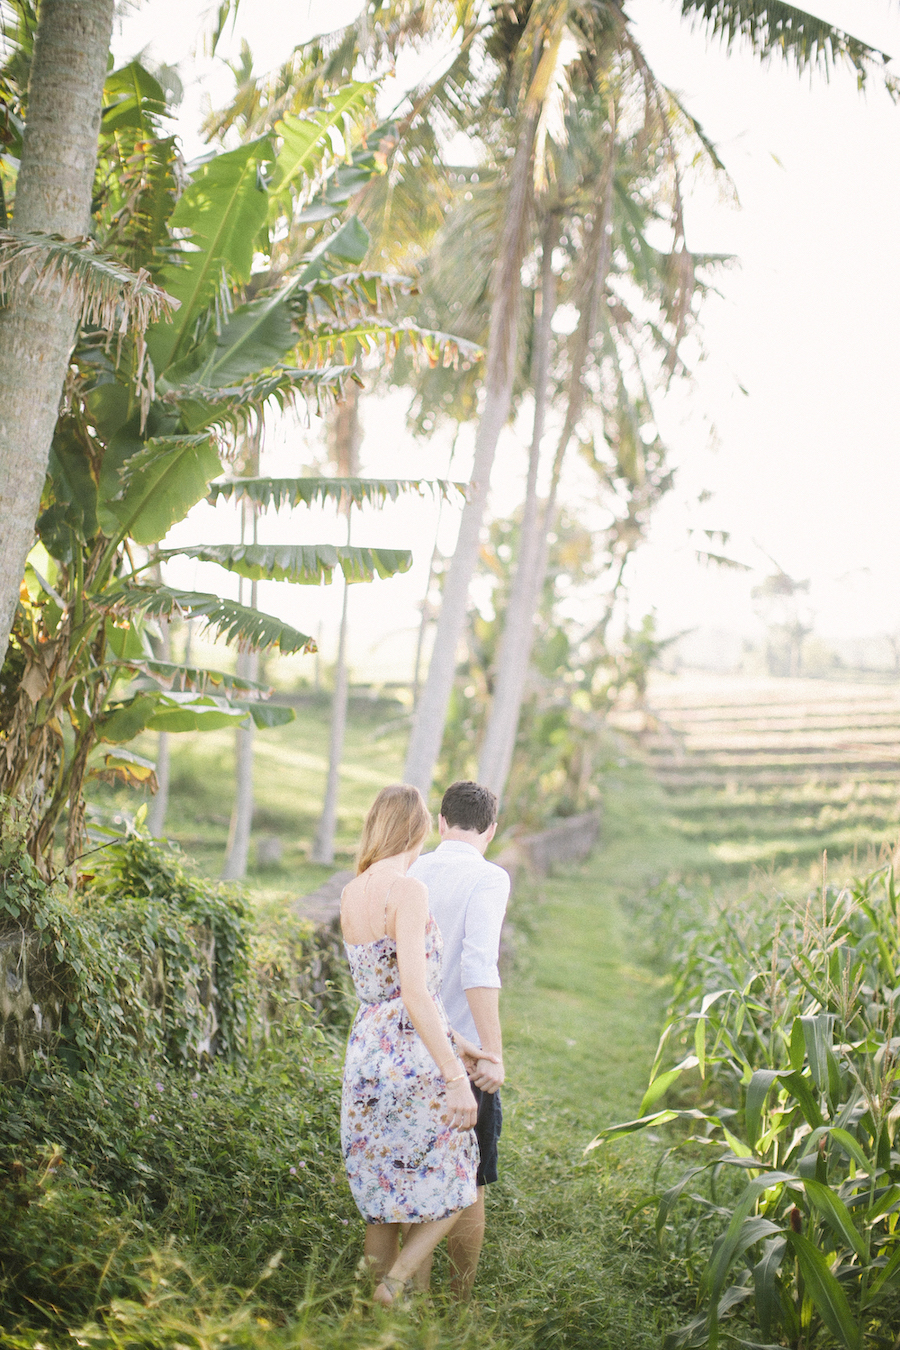 saya-photography-pre-wedding-engagement-bali-canggu-50.jpg